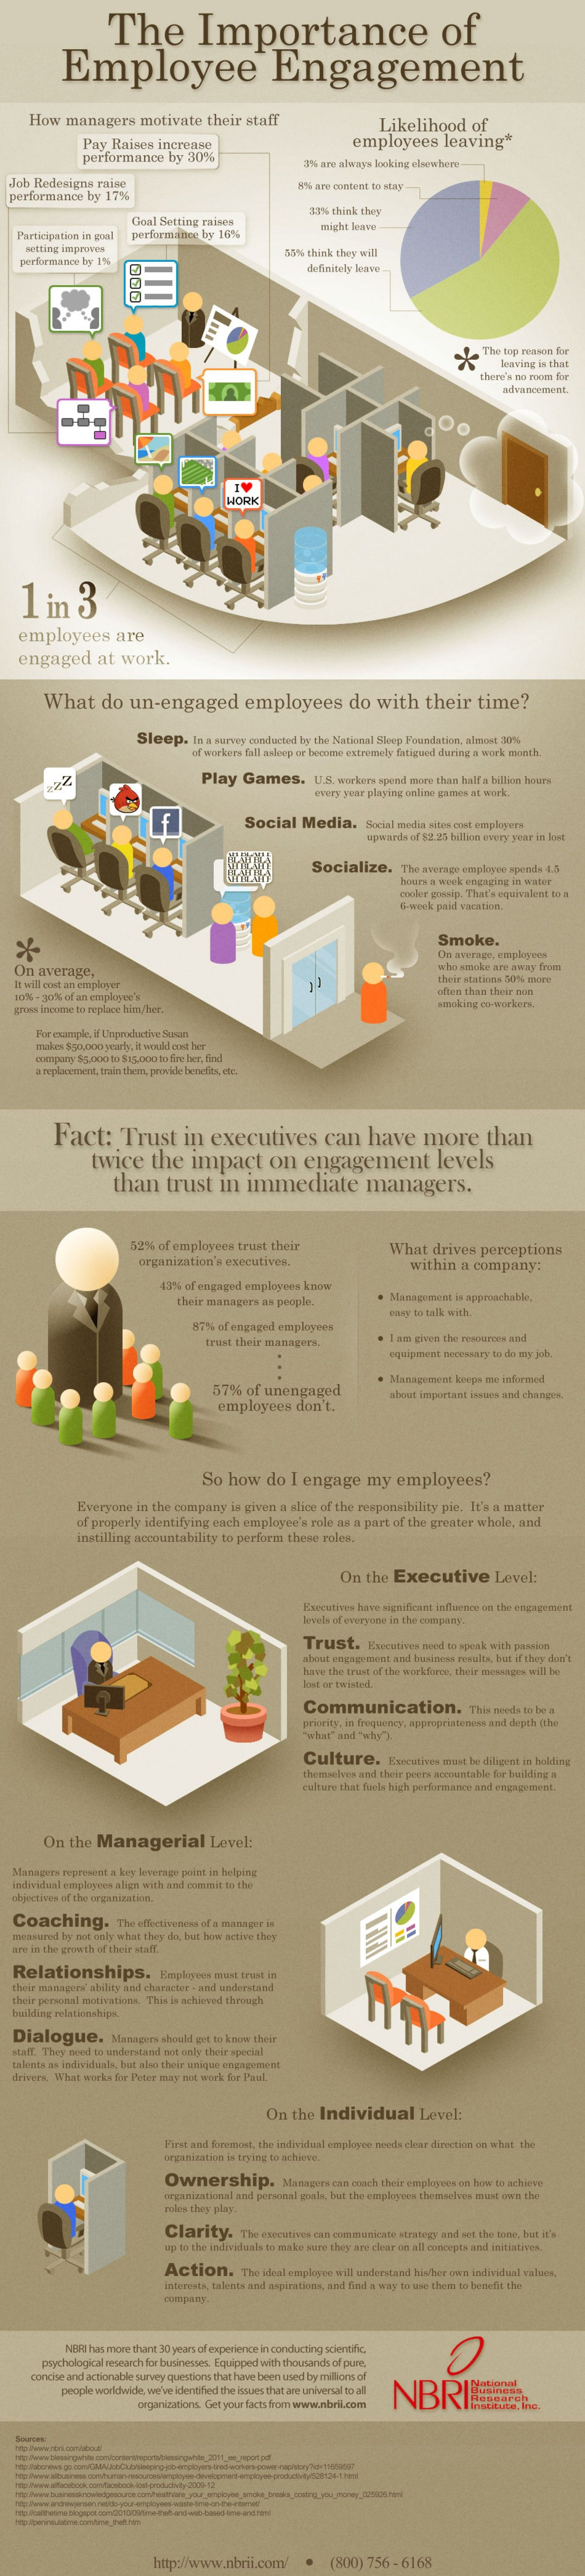 hipaa hitech policy templates - the importance of employee engagement infographic human